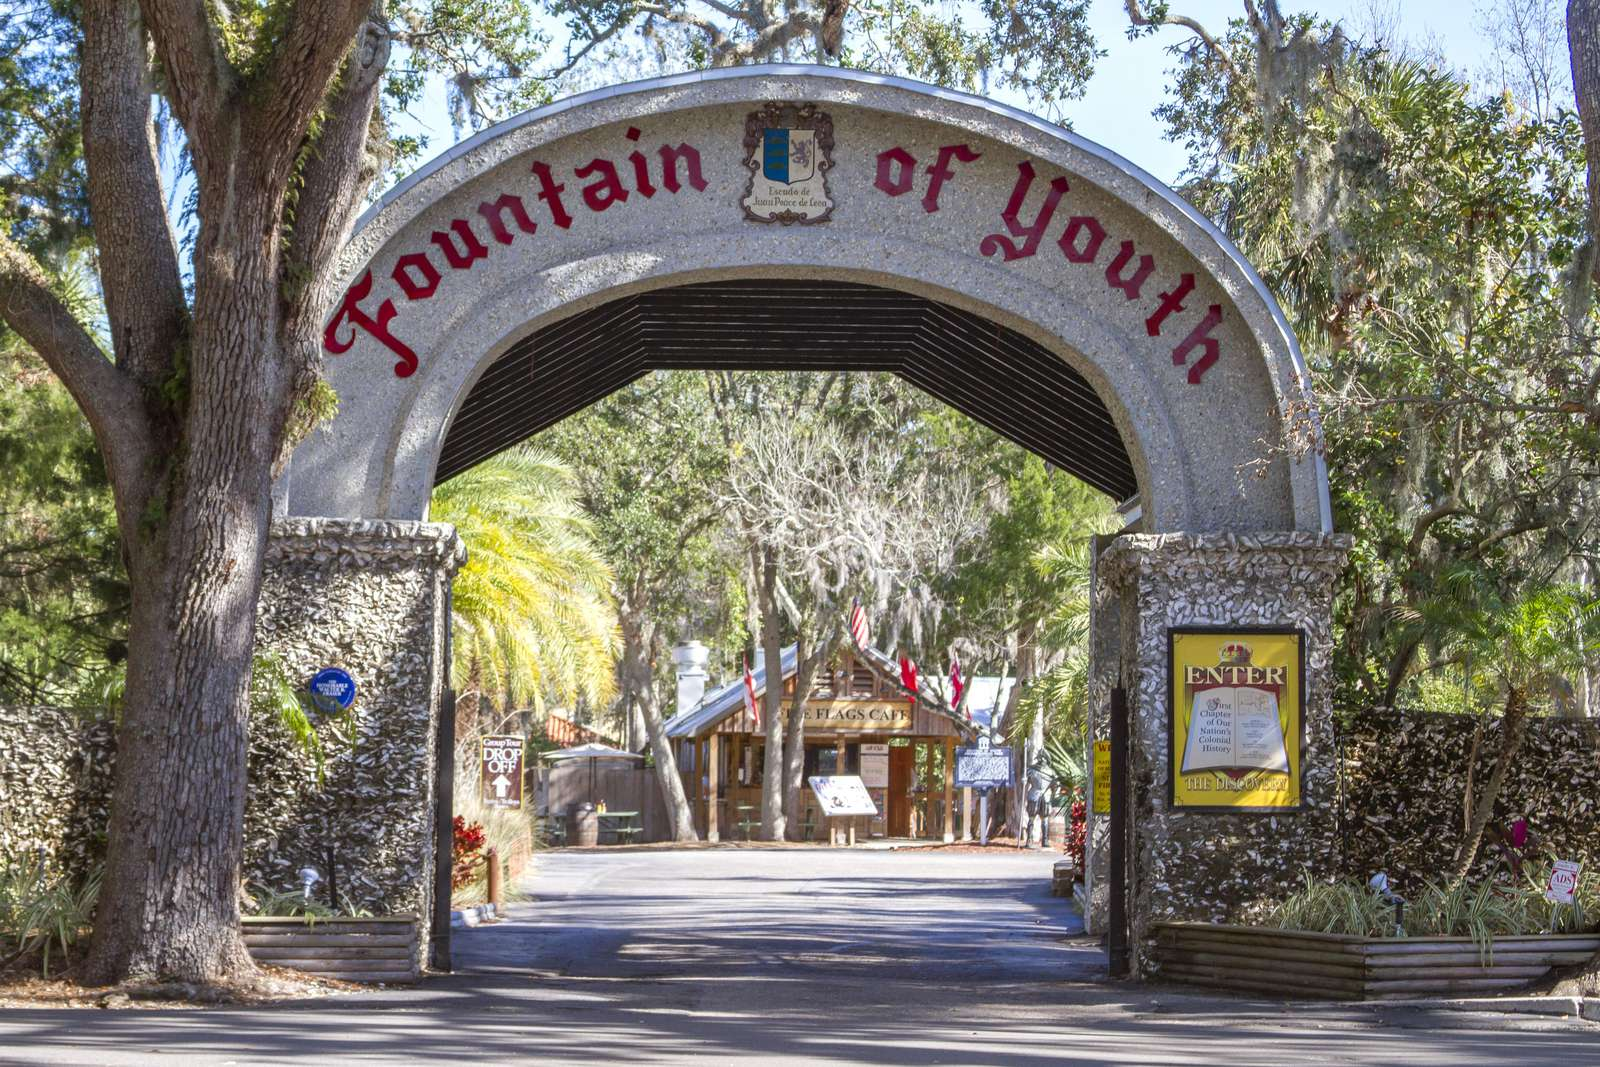 The Fountain of Youth St. Augustine